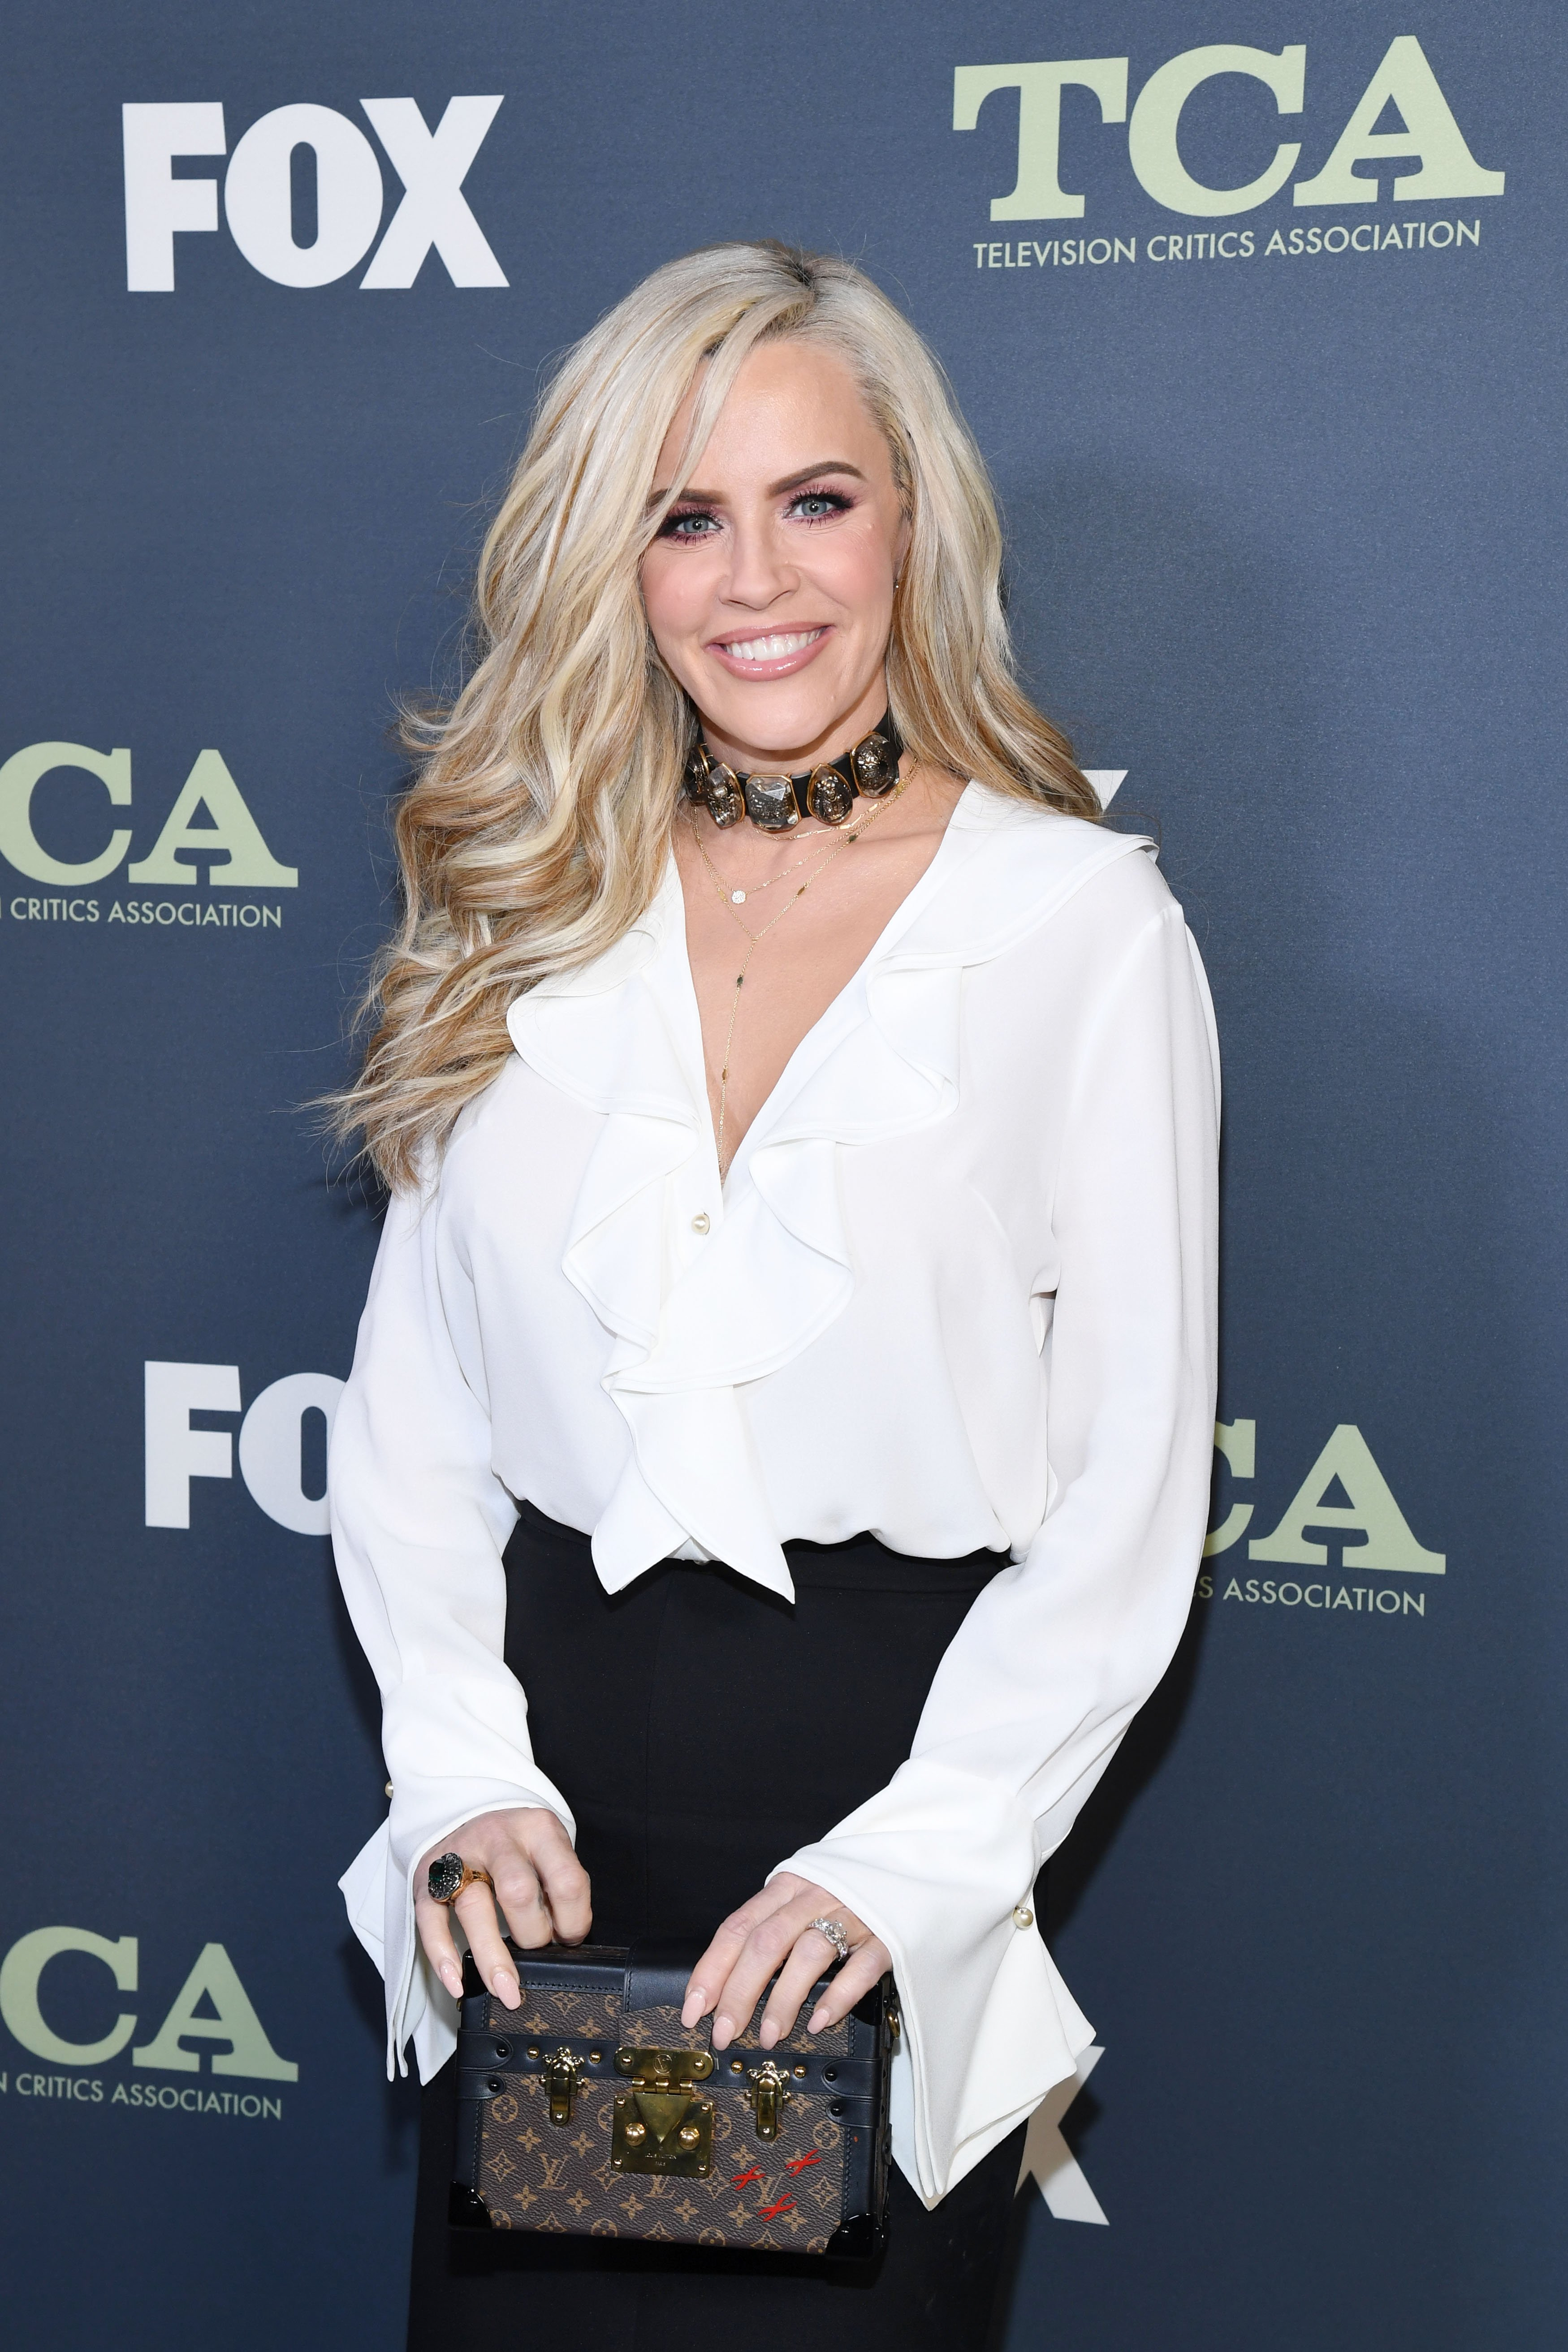 Jenny McCarthy attends the Fox Winter Television Critics Association in Los Angeles, California on February 6, 2019 | Photo: Getty Images